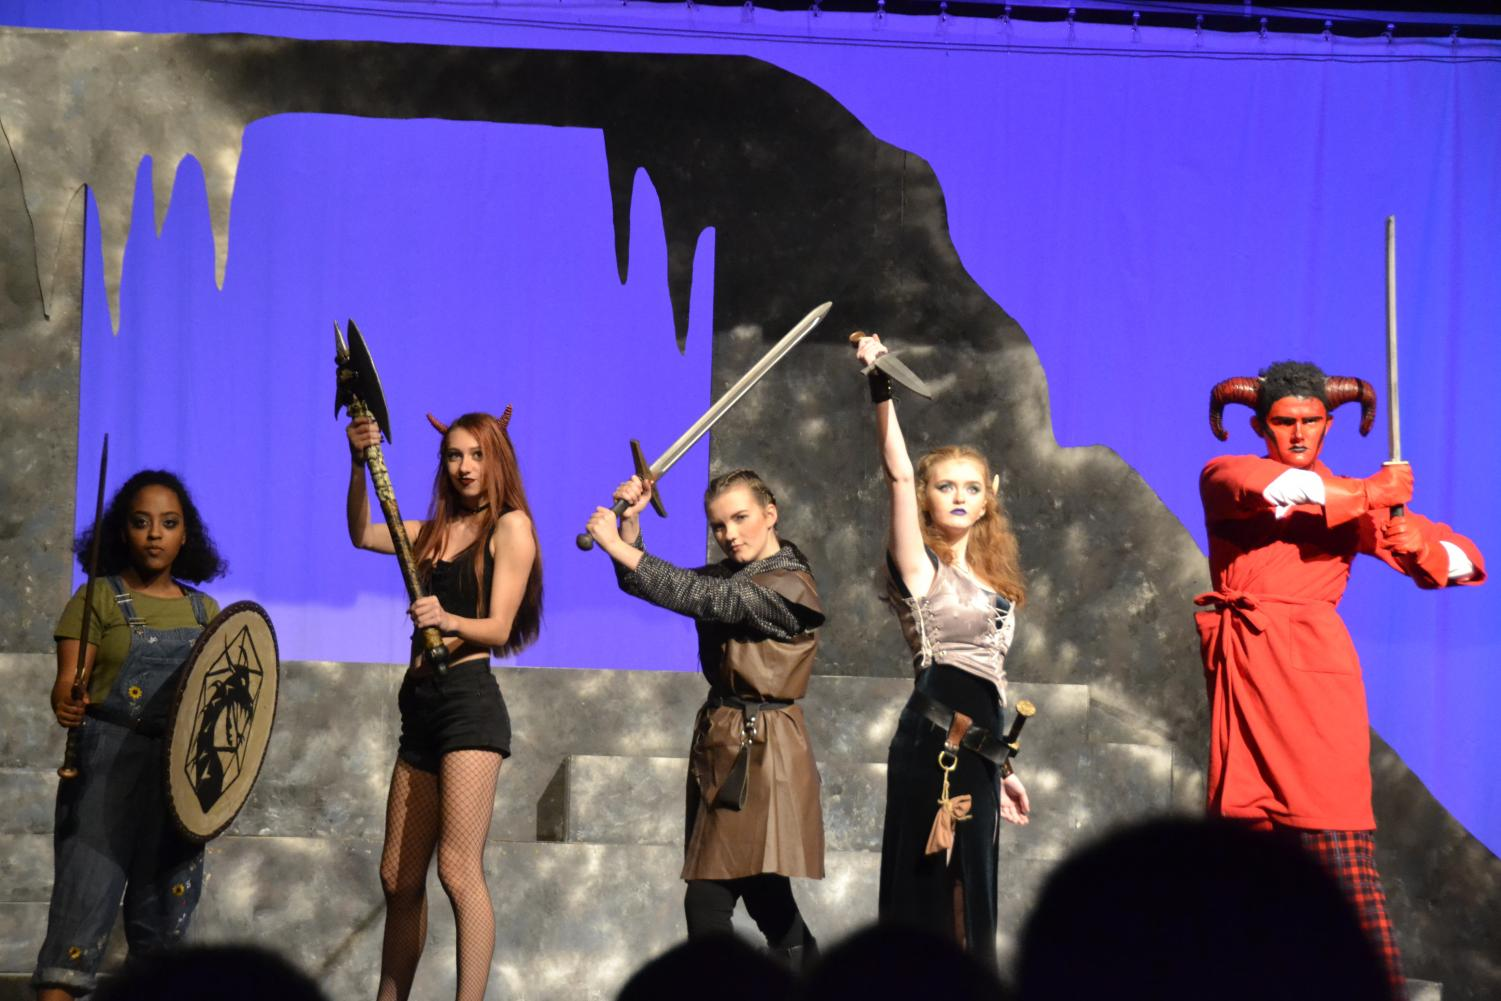 Agnes, Lileth, Tilly, Kaliope and Orcus - one fierce, monster killing party.